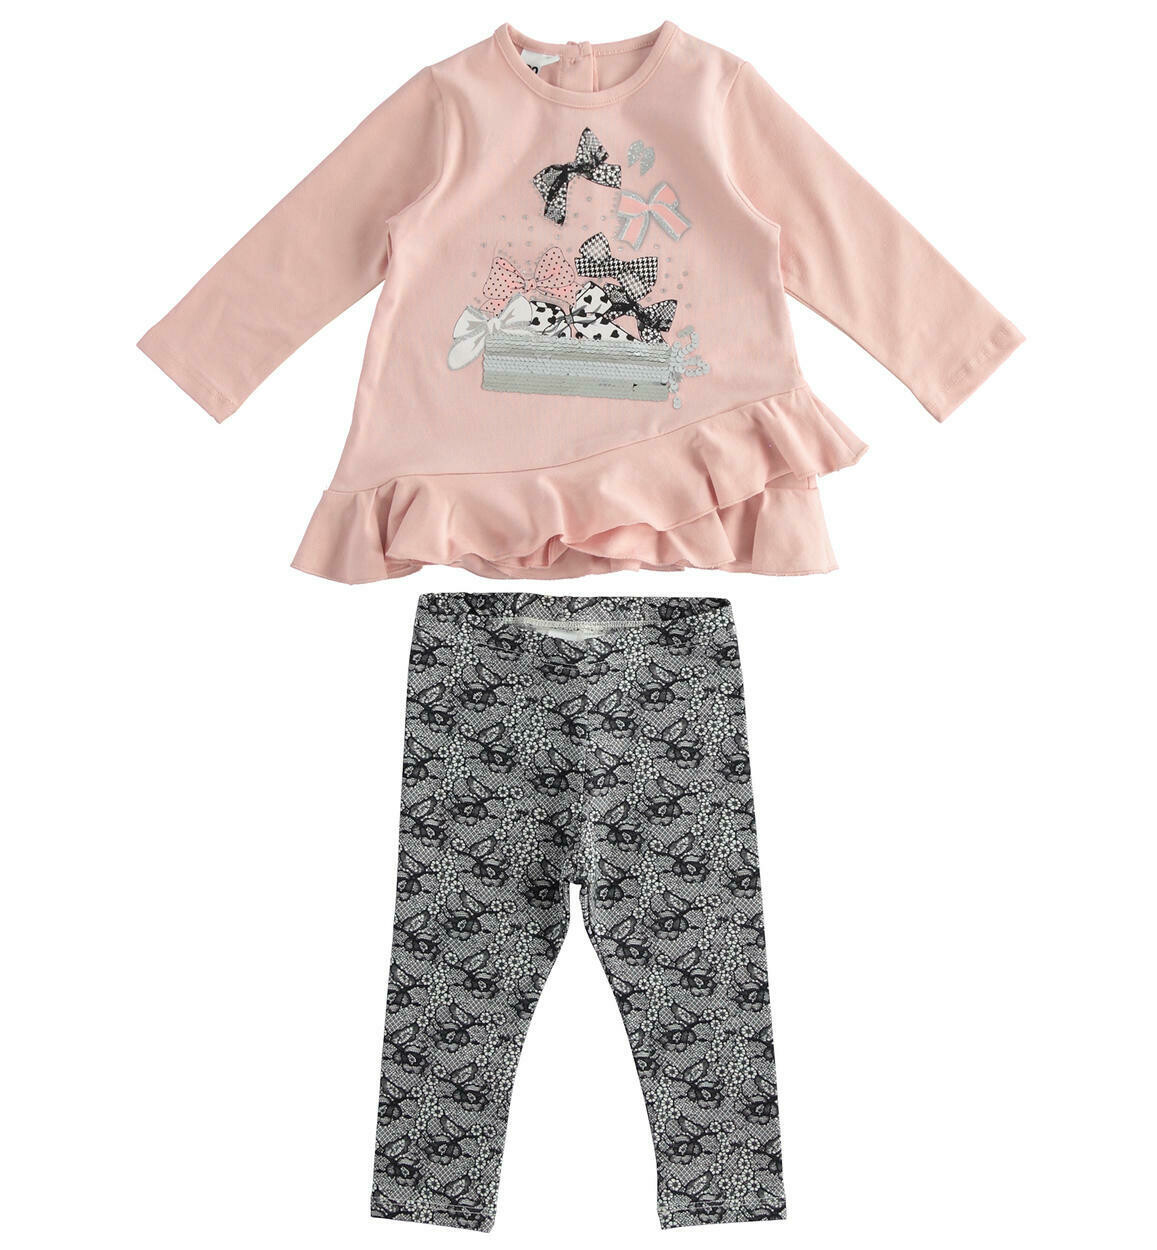 iDO Girls Set with T-shirt with double asymmetrical flounce at the bottom and leggings for girl